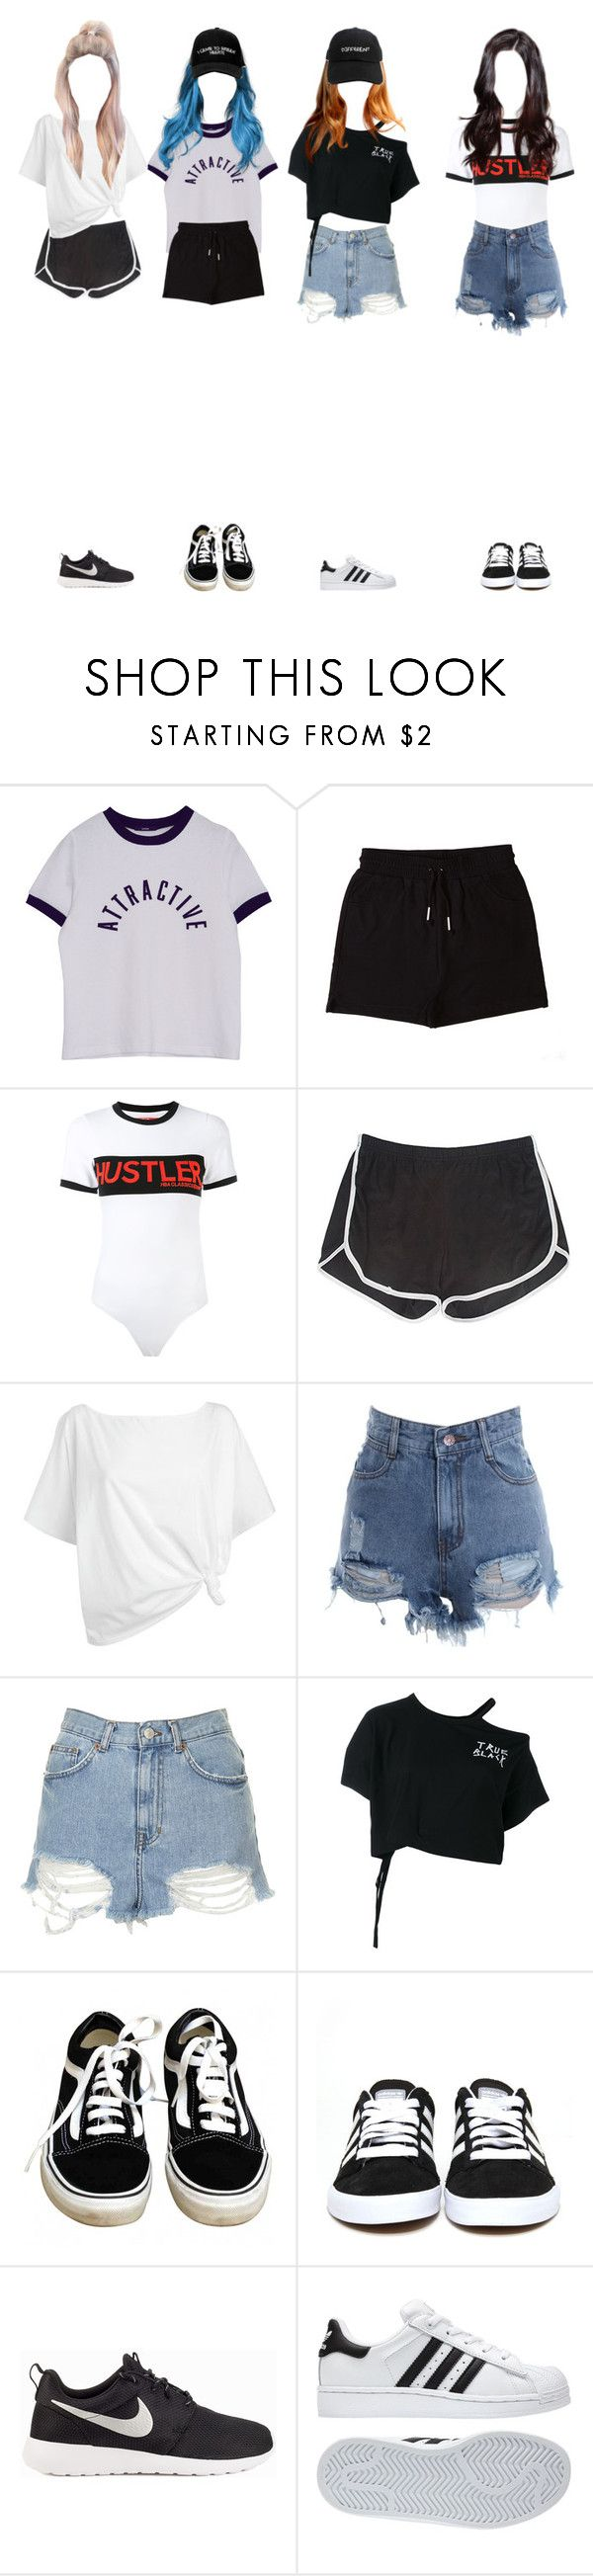 """Kpop Girl Group Dance Practice"" by x5sosfam-1dx ❤ liked on Polyvore featuring &nd B, Hood by Air, Red Herring, Topshop, Ann Demeulemeester, Vans, adidas, NIKE, Manolo Blahnik and RADisRAD"